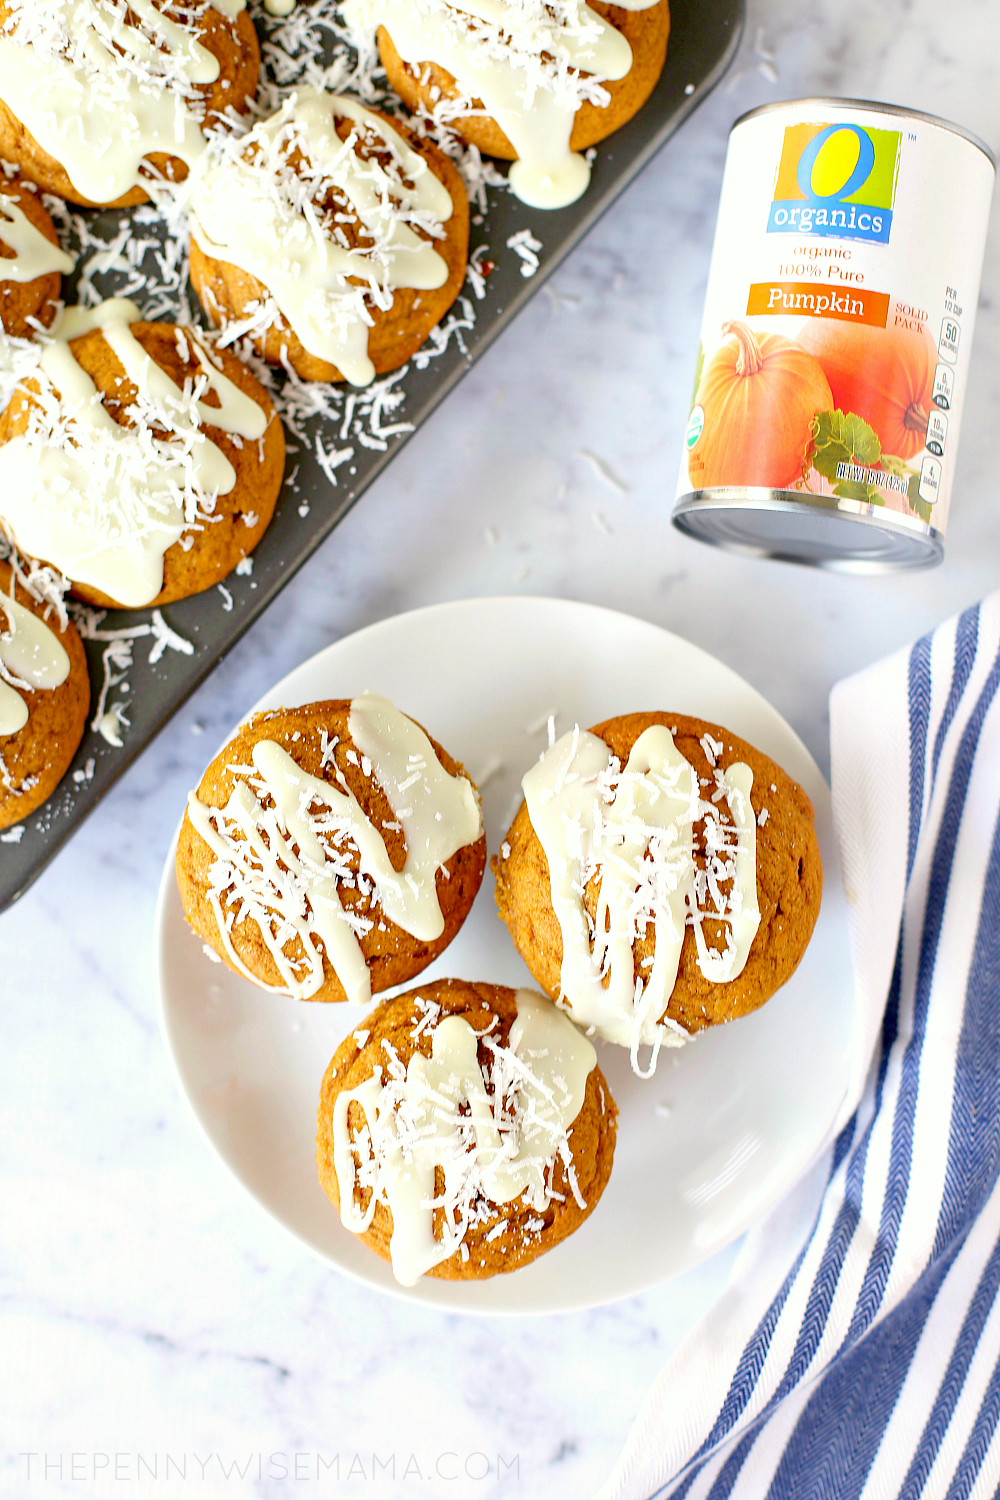 Pumpkin Muffins topped with white chocolate glaze and shredded coconut!